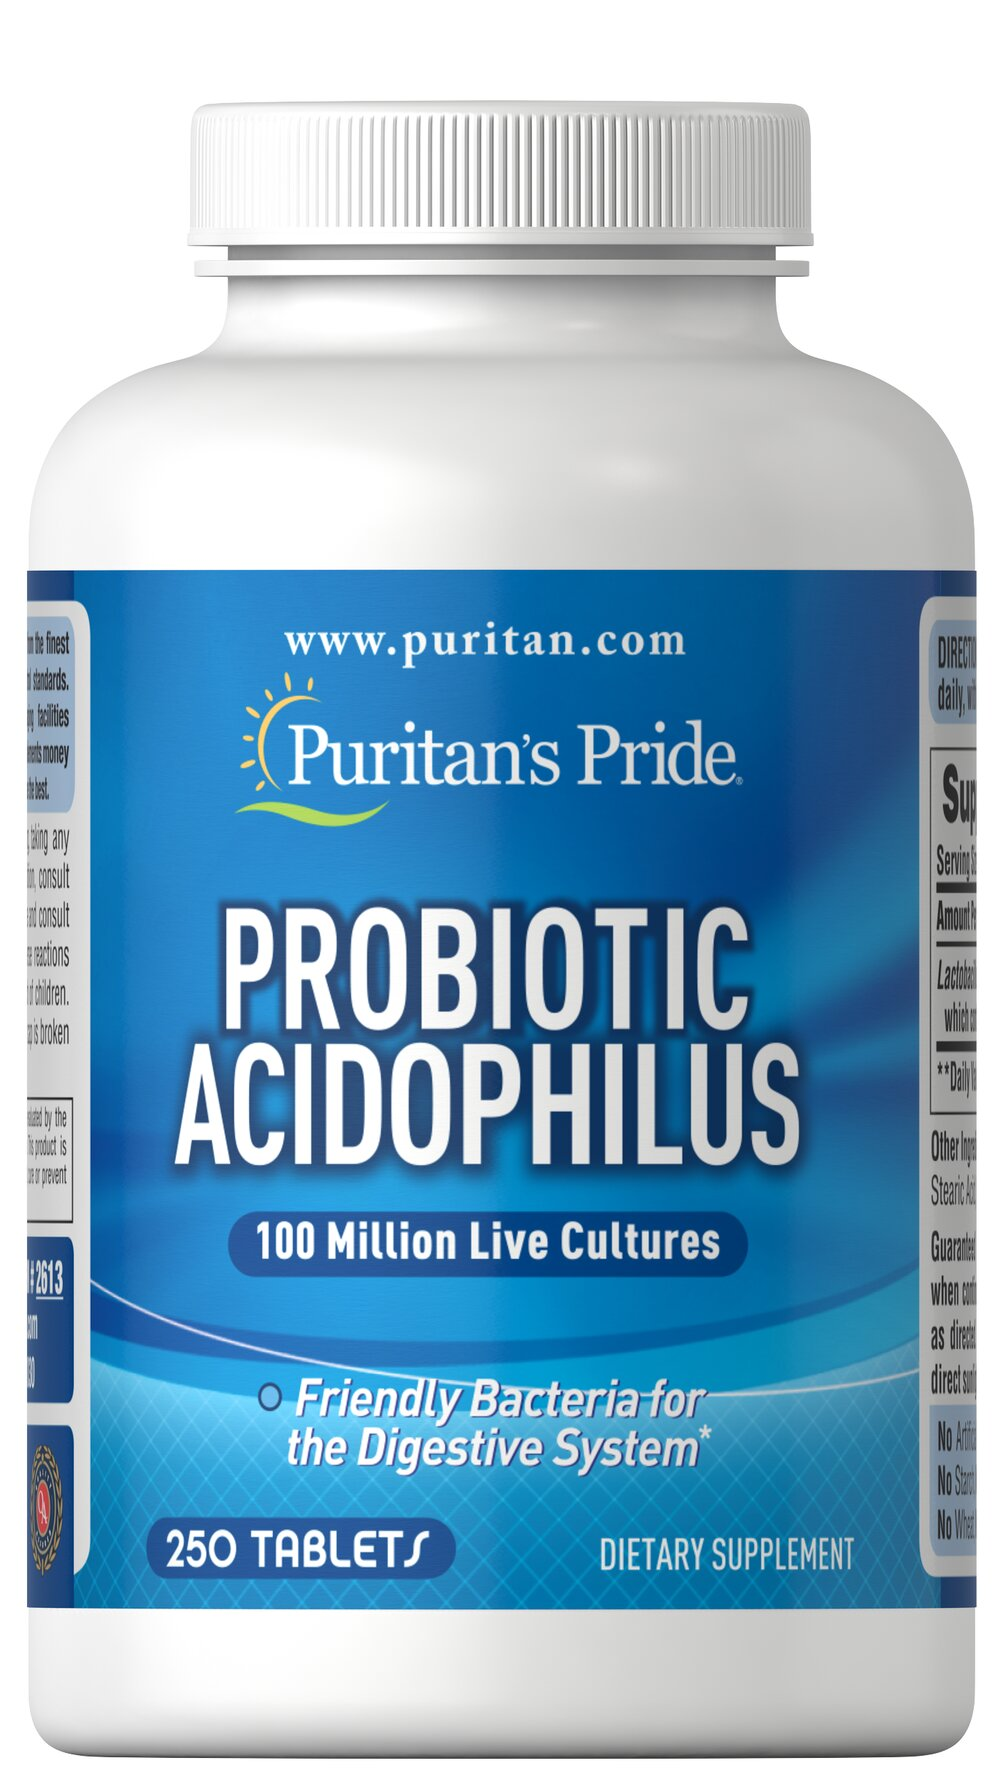 Probiotic Acidophilus <p>Acidophilus is a friendly bacteria naturally found in the intestinal tract.** More than 400 species of bacteria, also called normal flora, live in the adult human GI tract.  Our Probiotic Acidophilus contains over 100 million active Lactobacillus Acidophilus (including the naturally occurring metabolic product produced by Lactobacilli) at the time of manufacture. Adults can take one (1) capsule daily, preferably with a meal.</p> 250 Capsules  $15.19